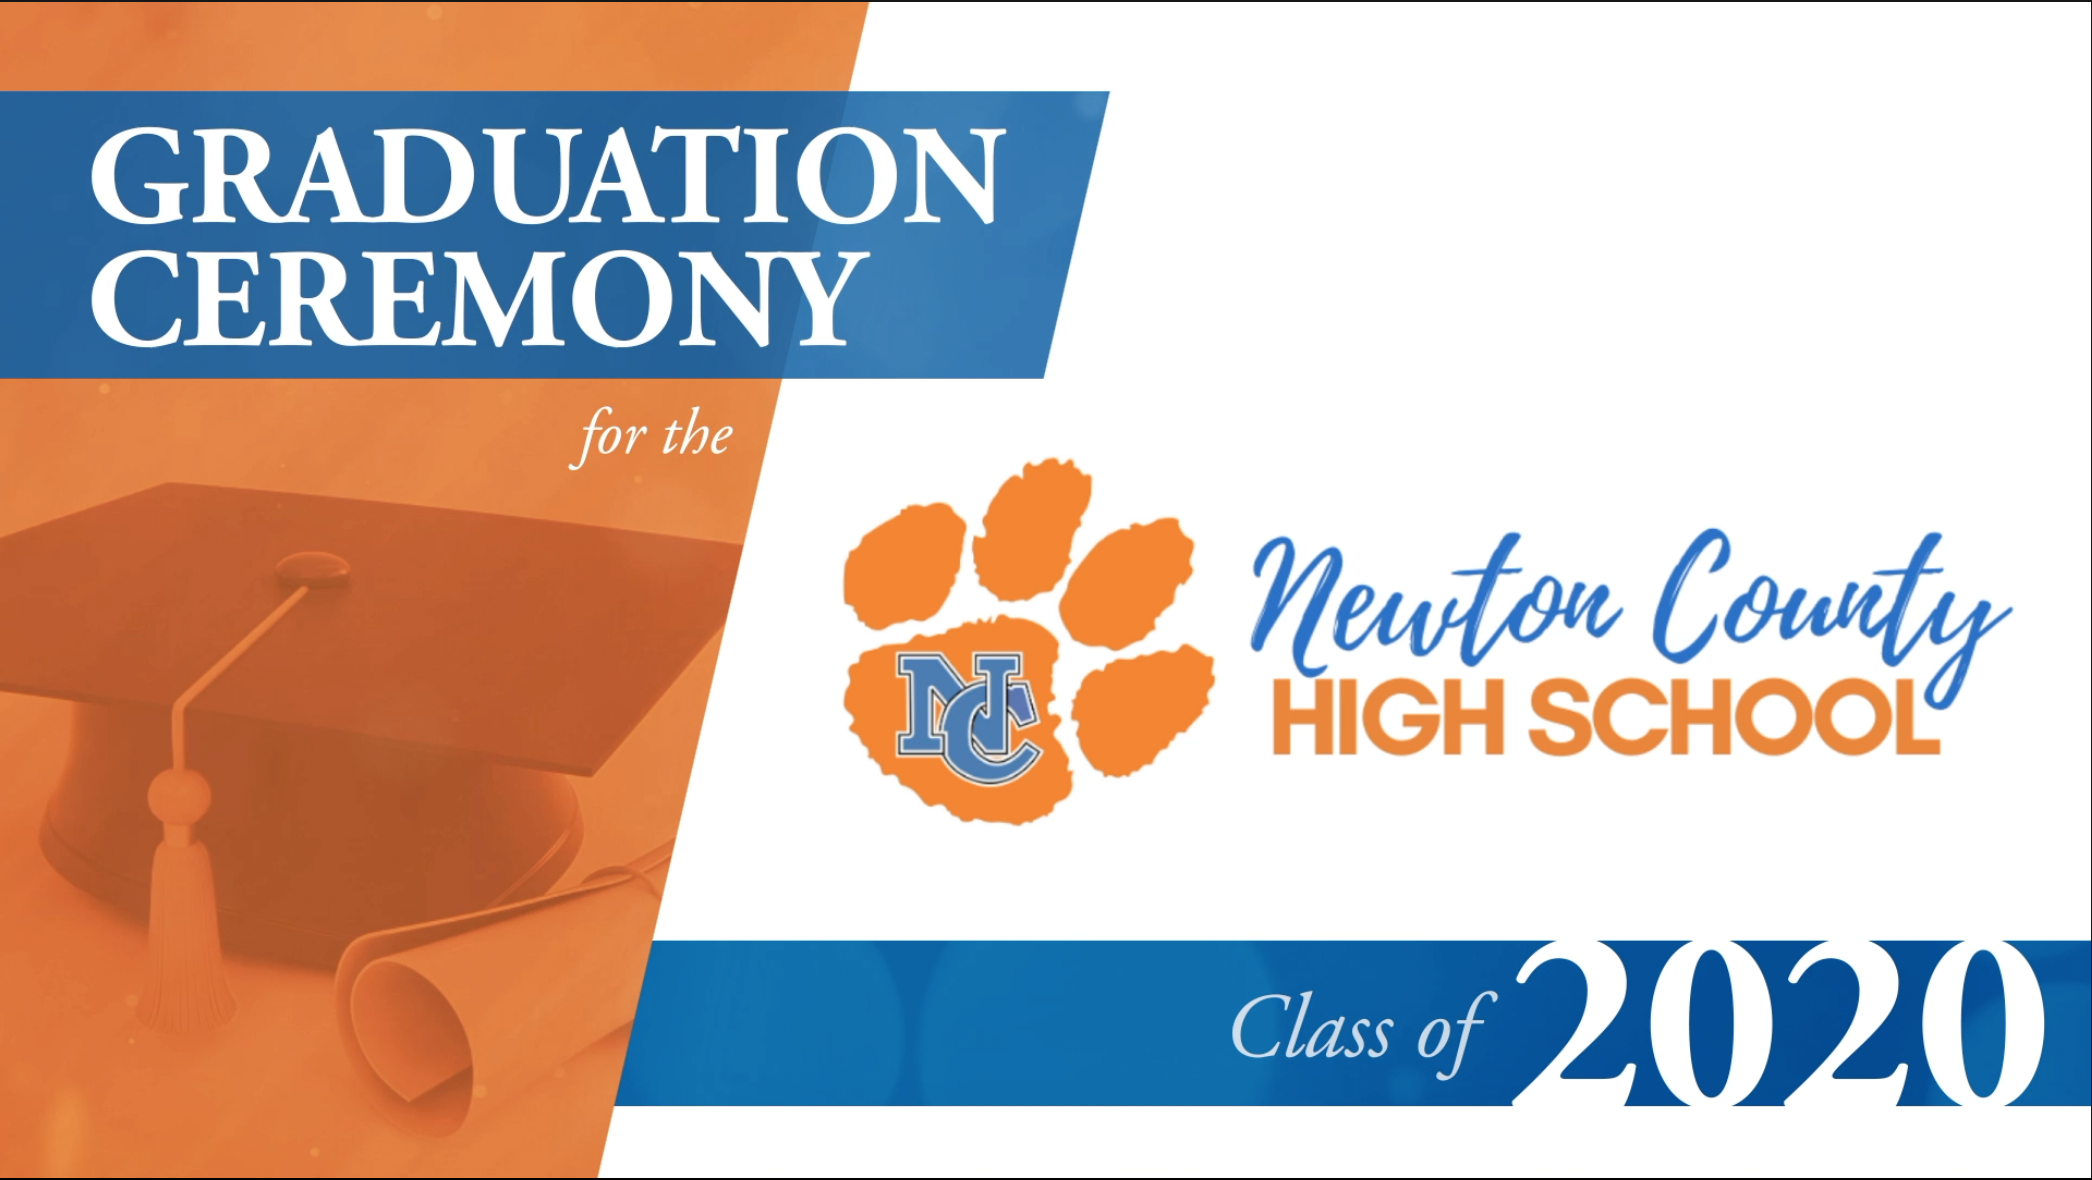 NCHS Class of 2020 Graduation Image